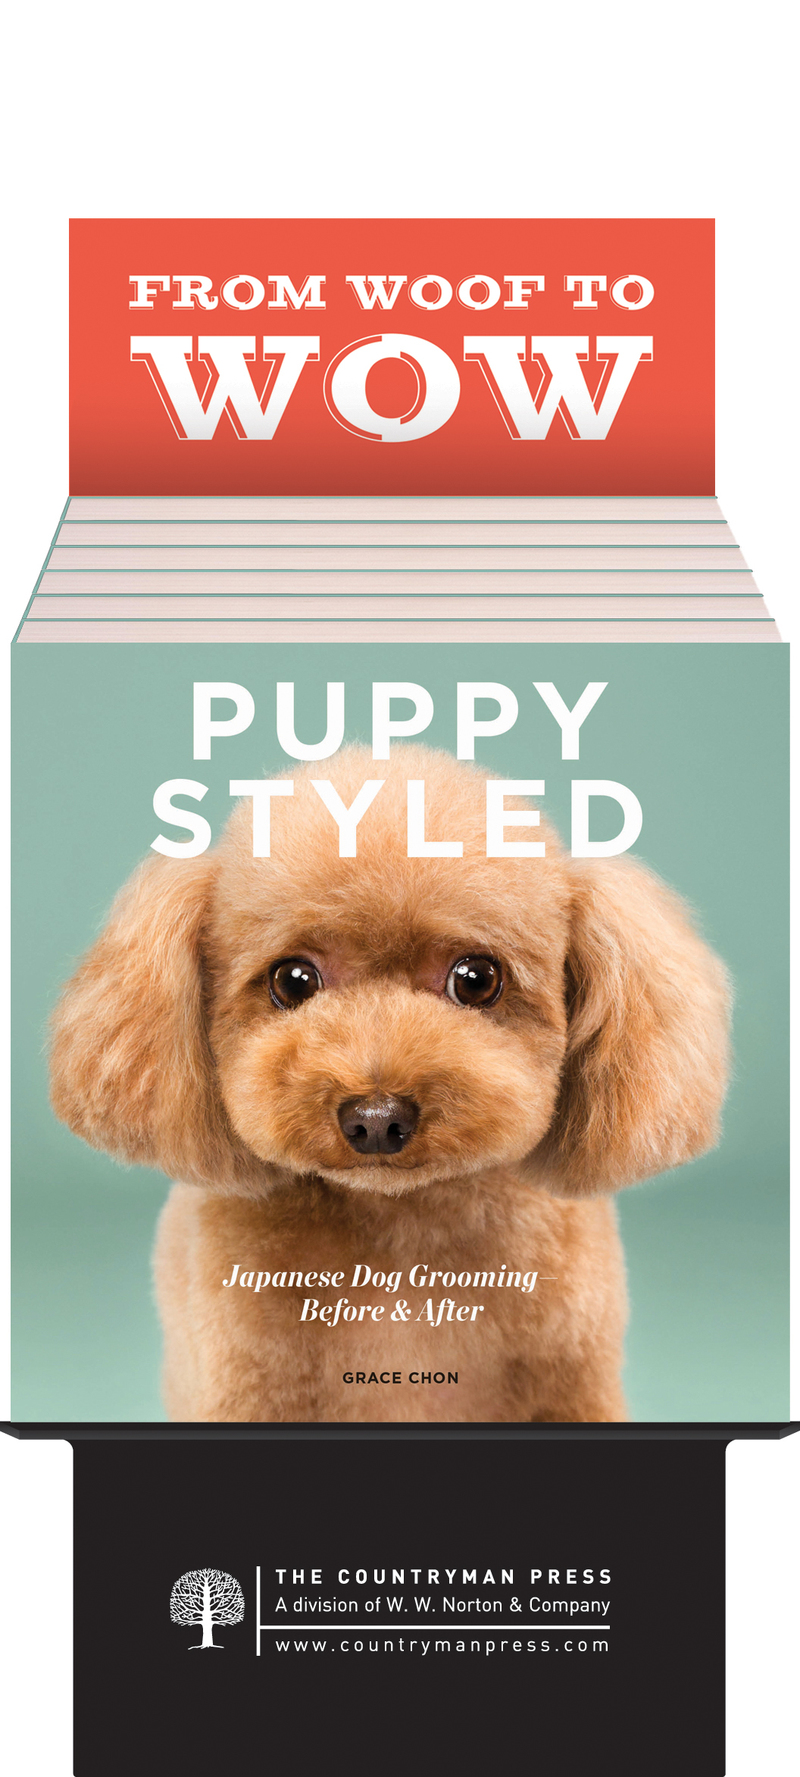 Book cover for Puppy Styled by Grace Chon